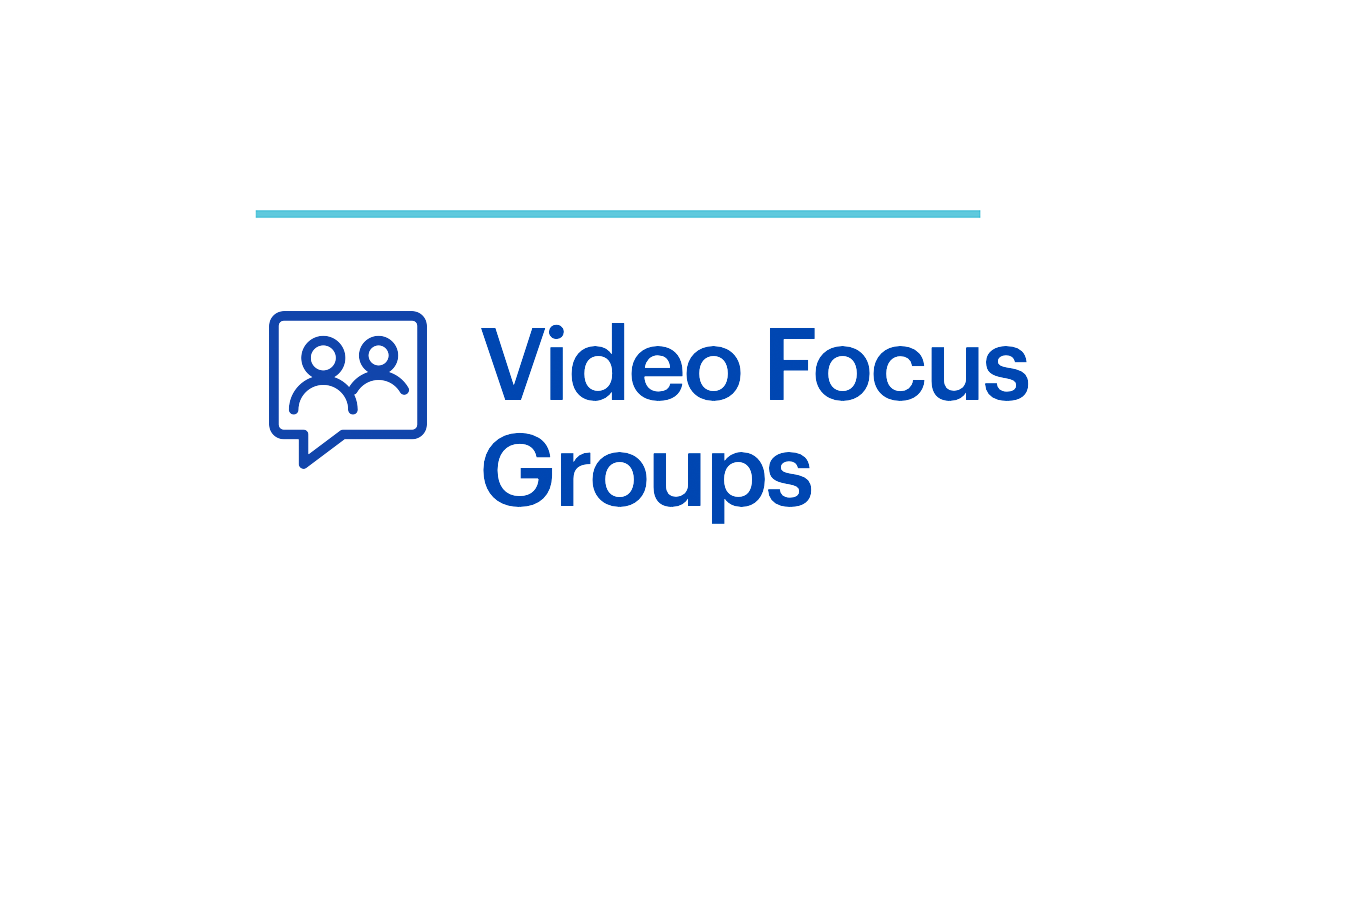 Webinar Video Focus Groups